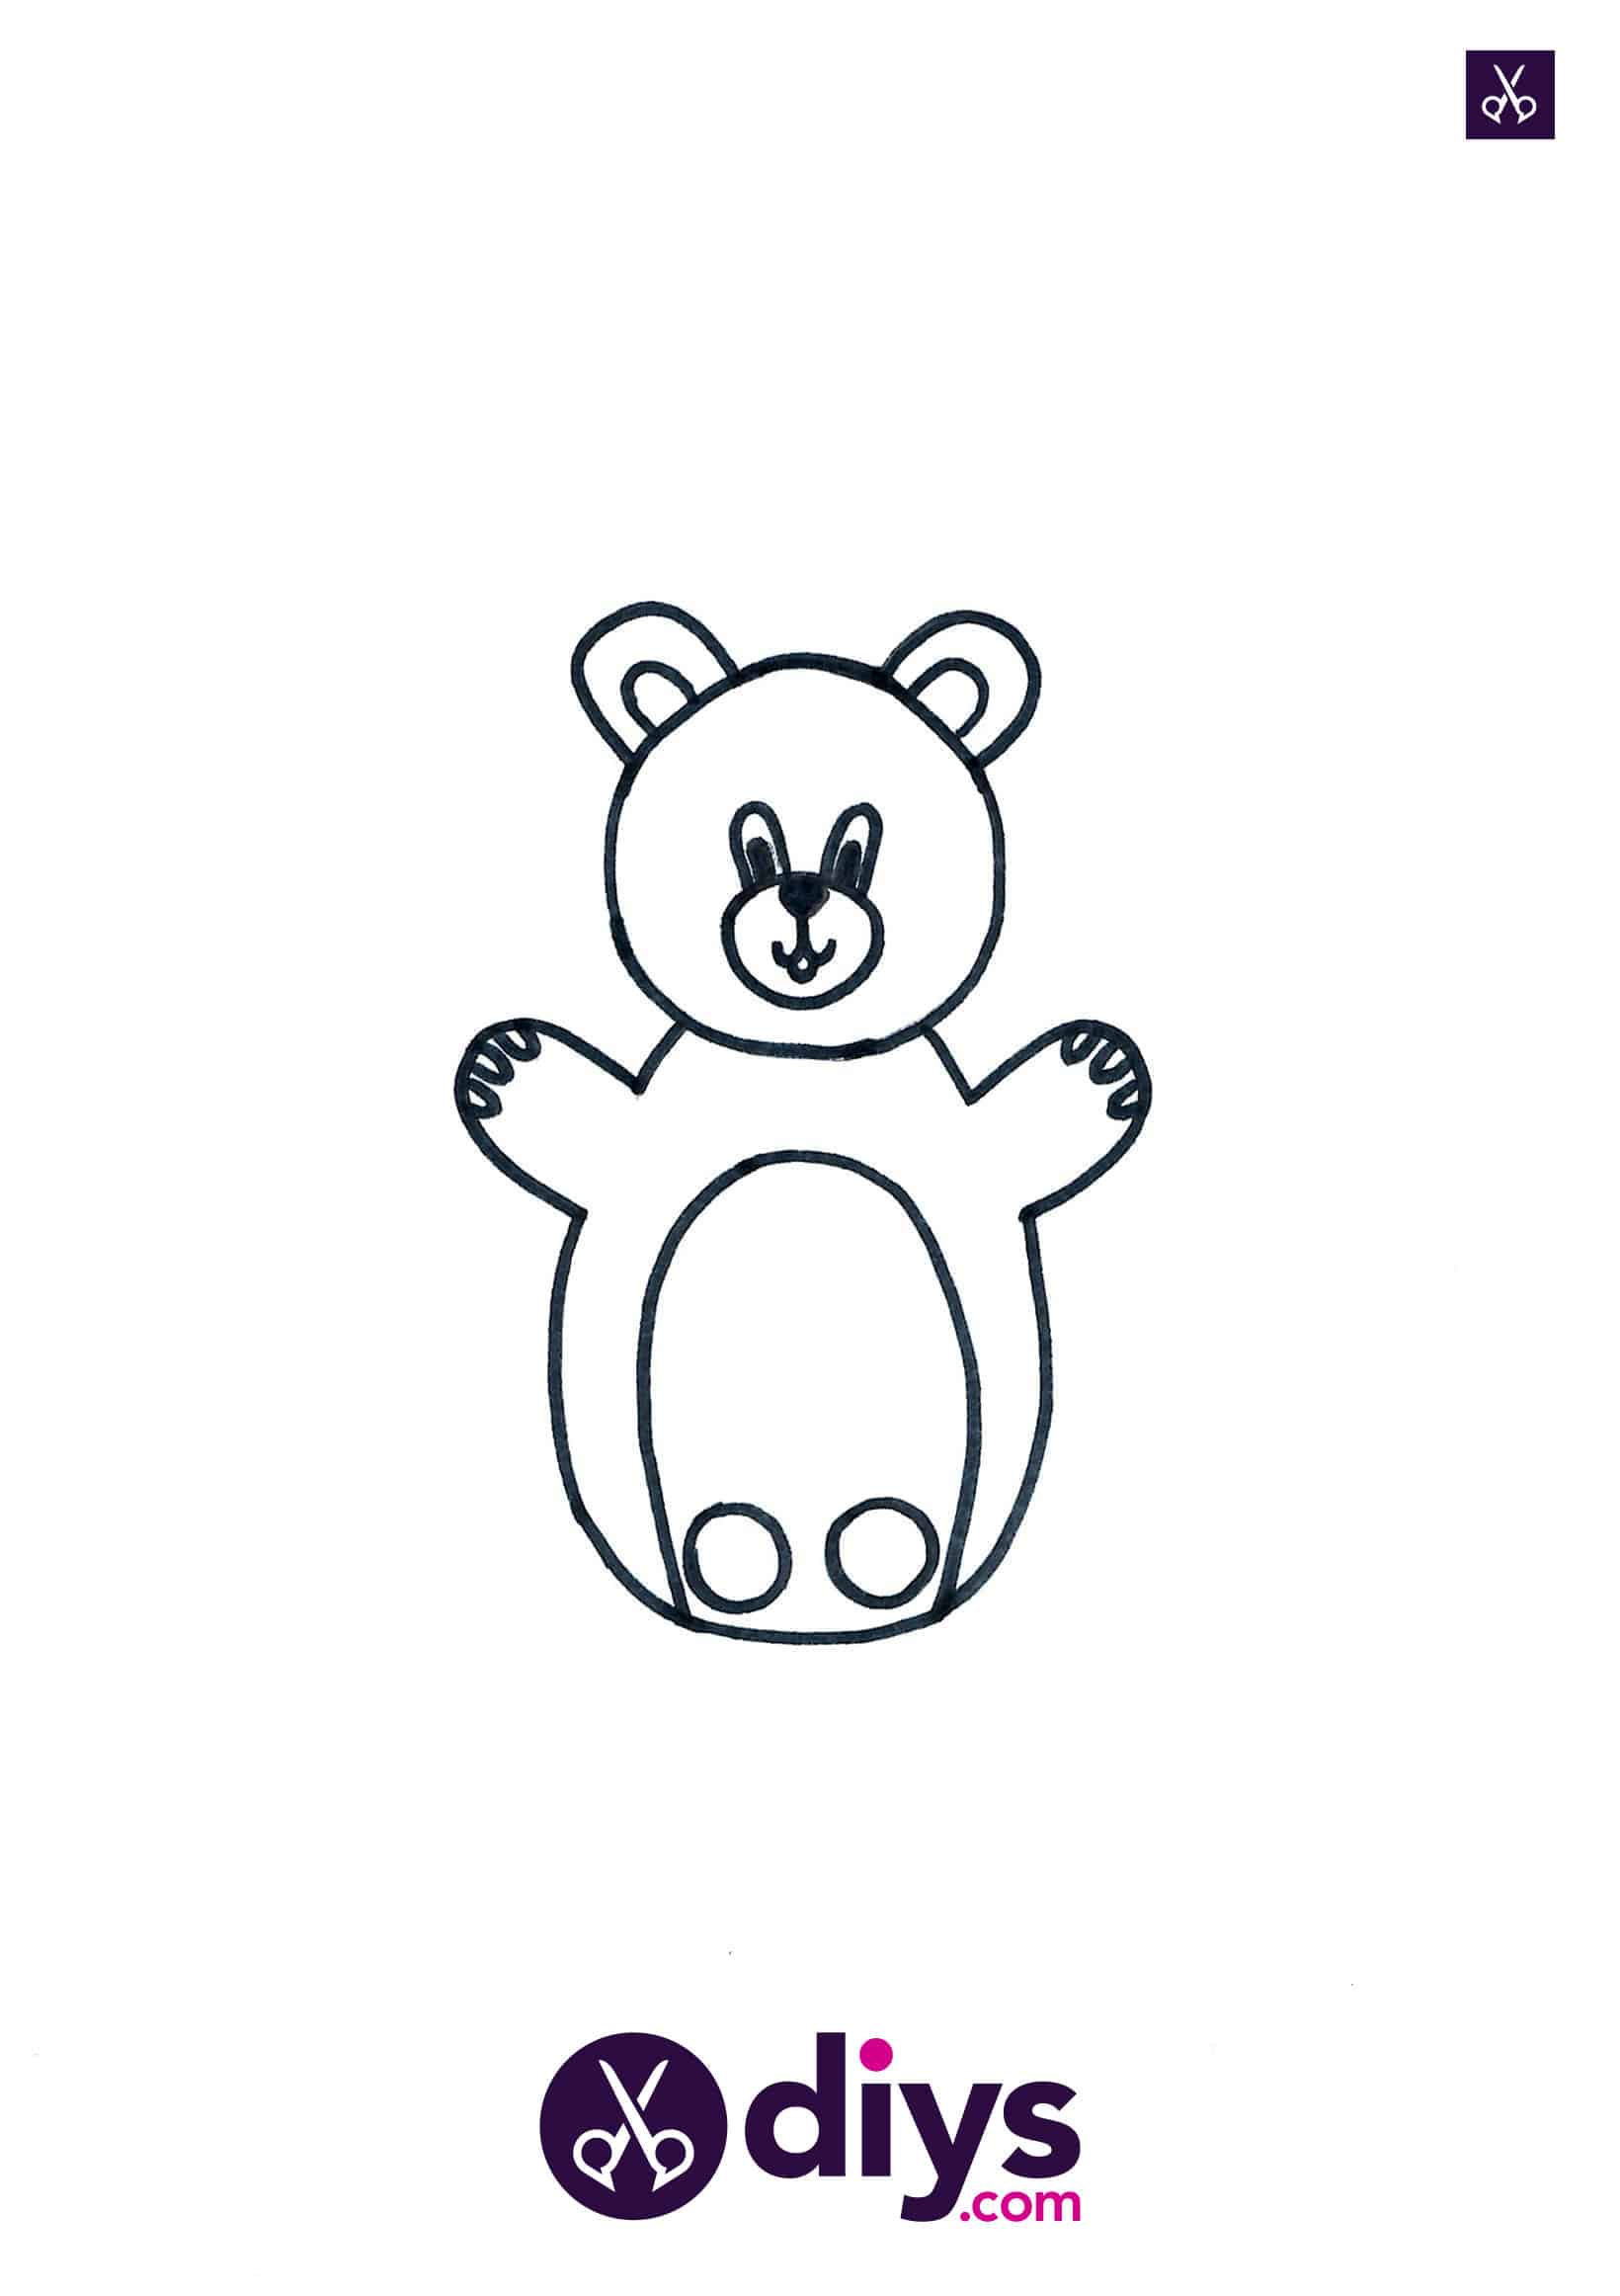 How to make an adorable bear finger puppet template